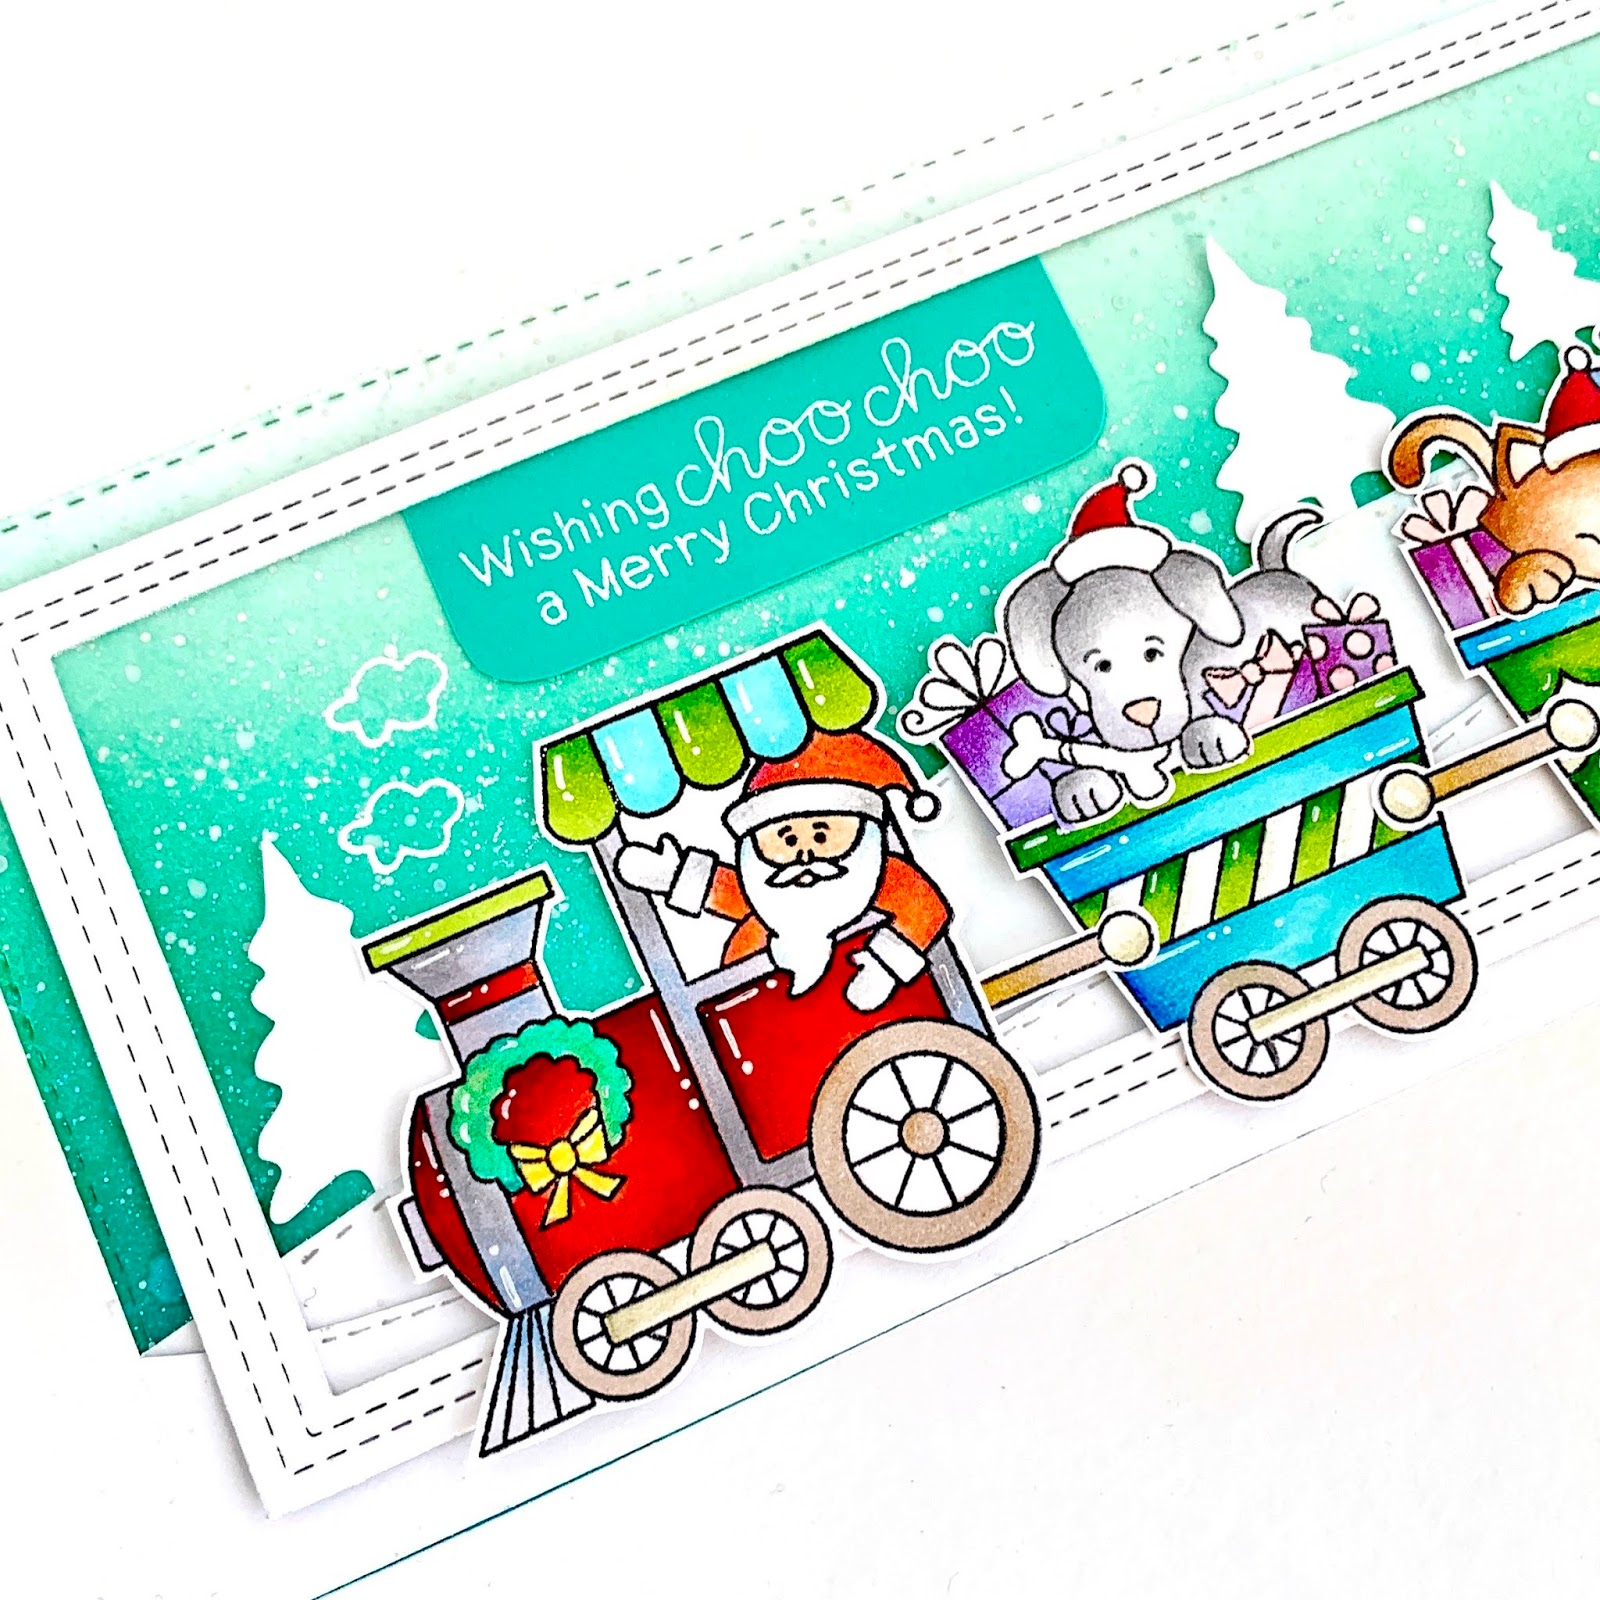 Wishing Choo-Choo a Merry Christmas Card by September Guest Designer, Handmade by Kavya | All Aboard for Christmas Stamp Set by Newton's Nook Designs #newtonsnook #handmade